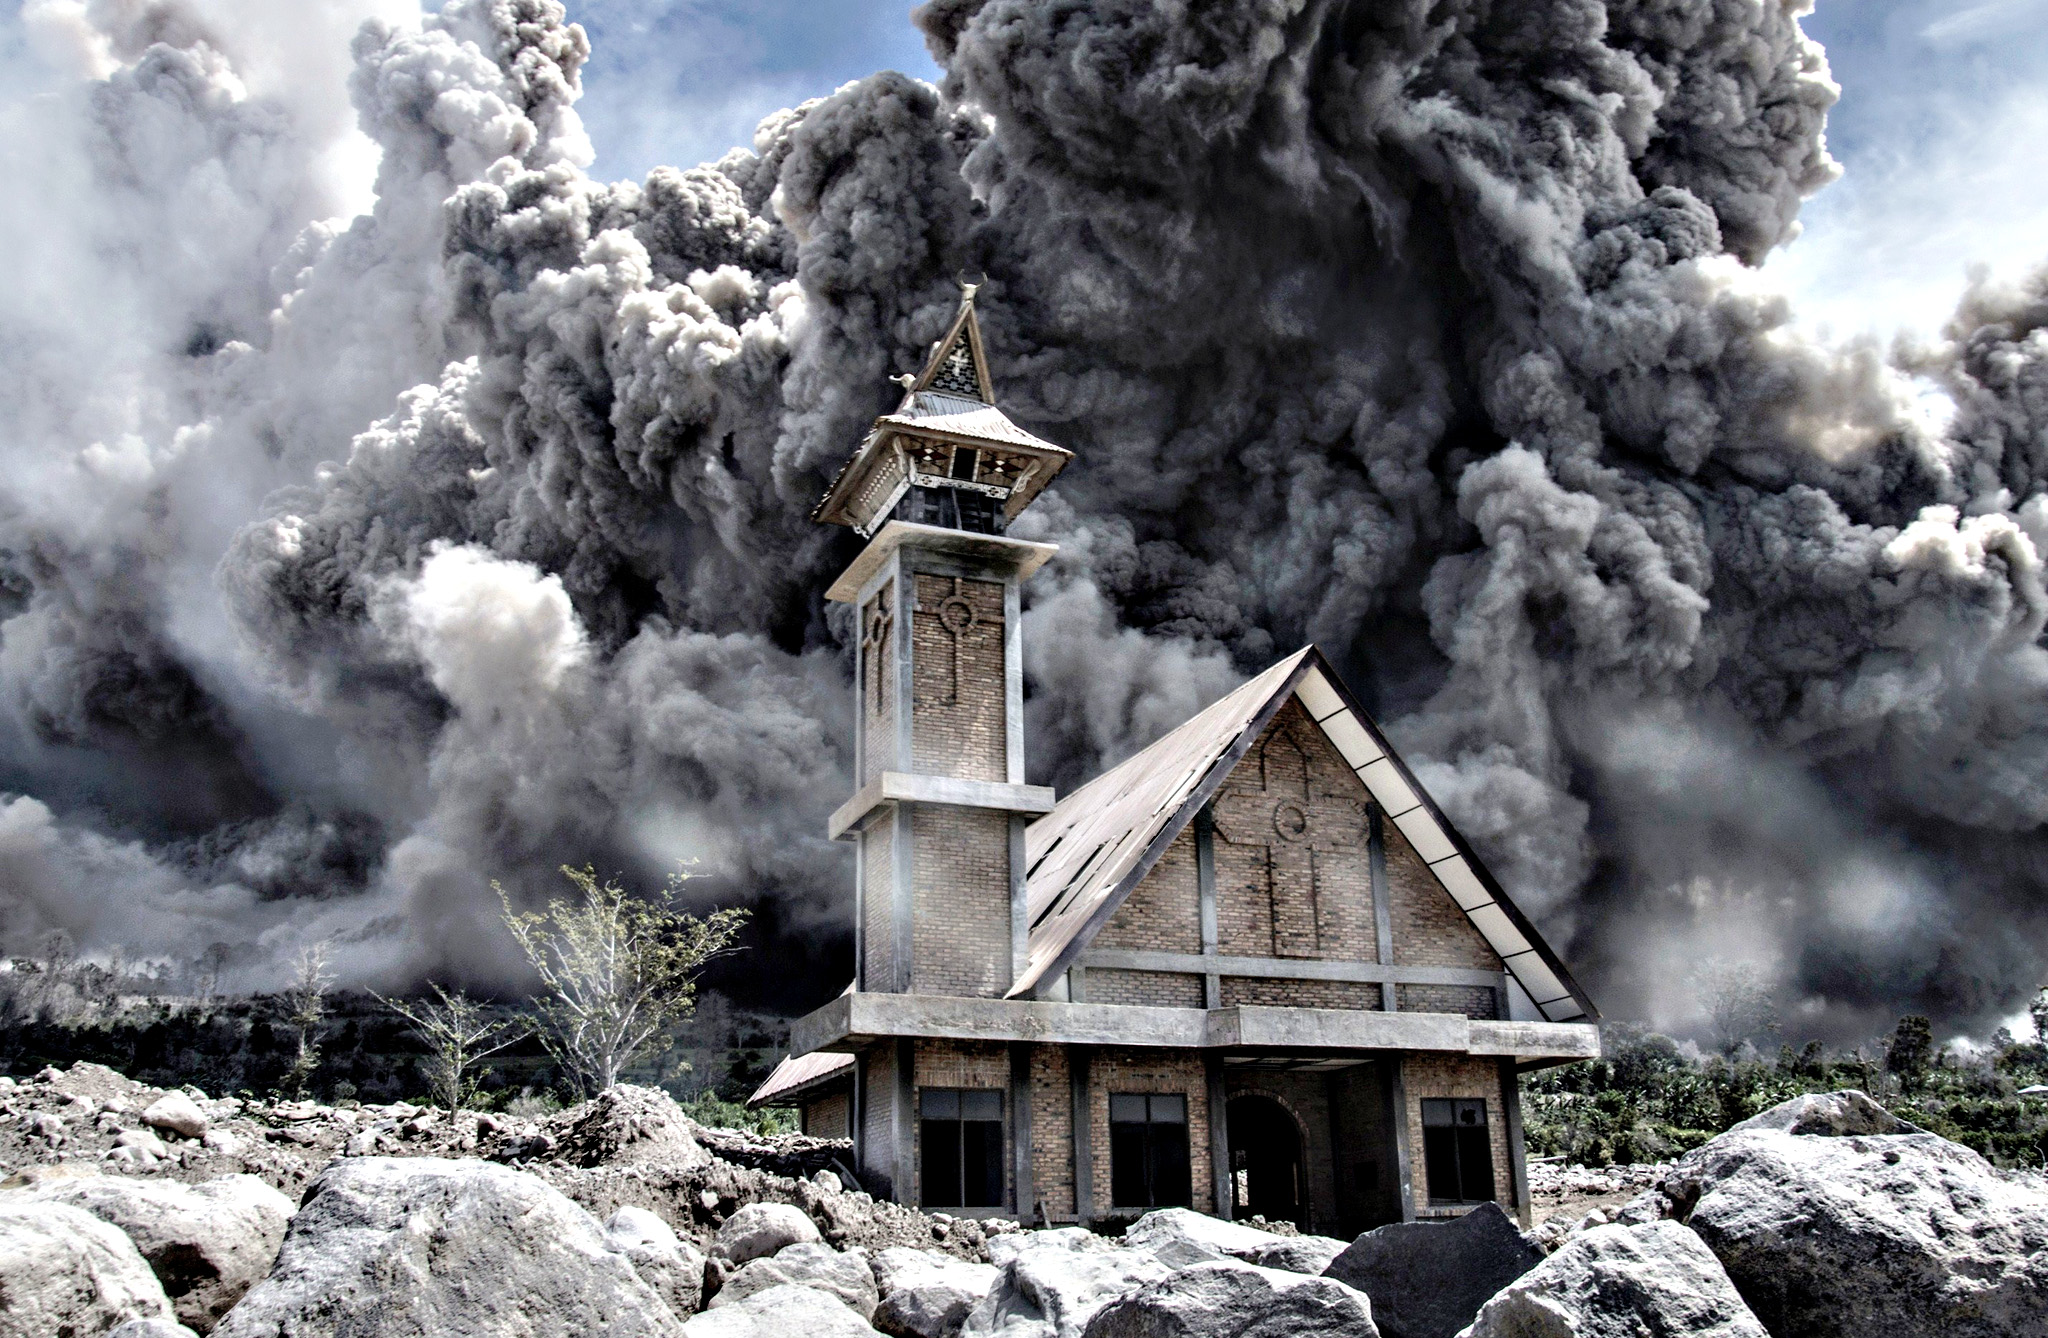 Ash from Mount Sinabung volcano fills the sky over an abandoned church during another eruption in Karo, in Indonesia's North Sumatra province on Friday. Sinabung rumbled back to life in 2013 after a period of inactivity, since when around 10,000 people have had to evacuate their homes